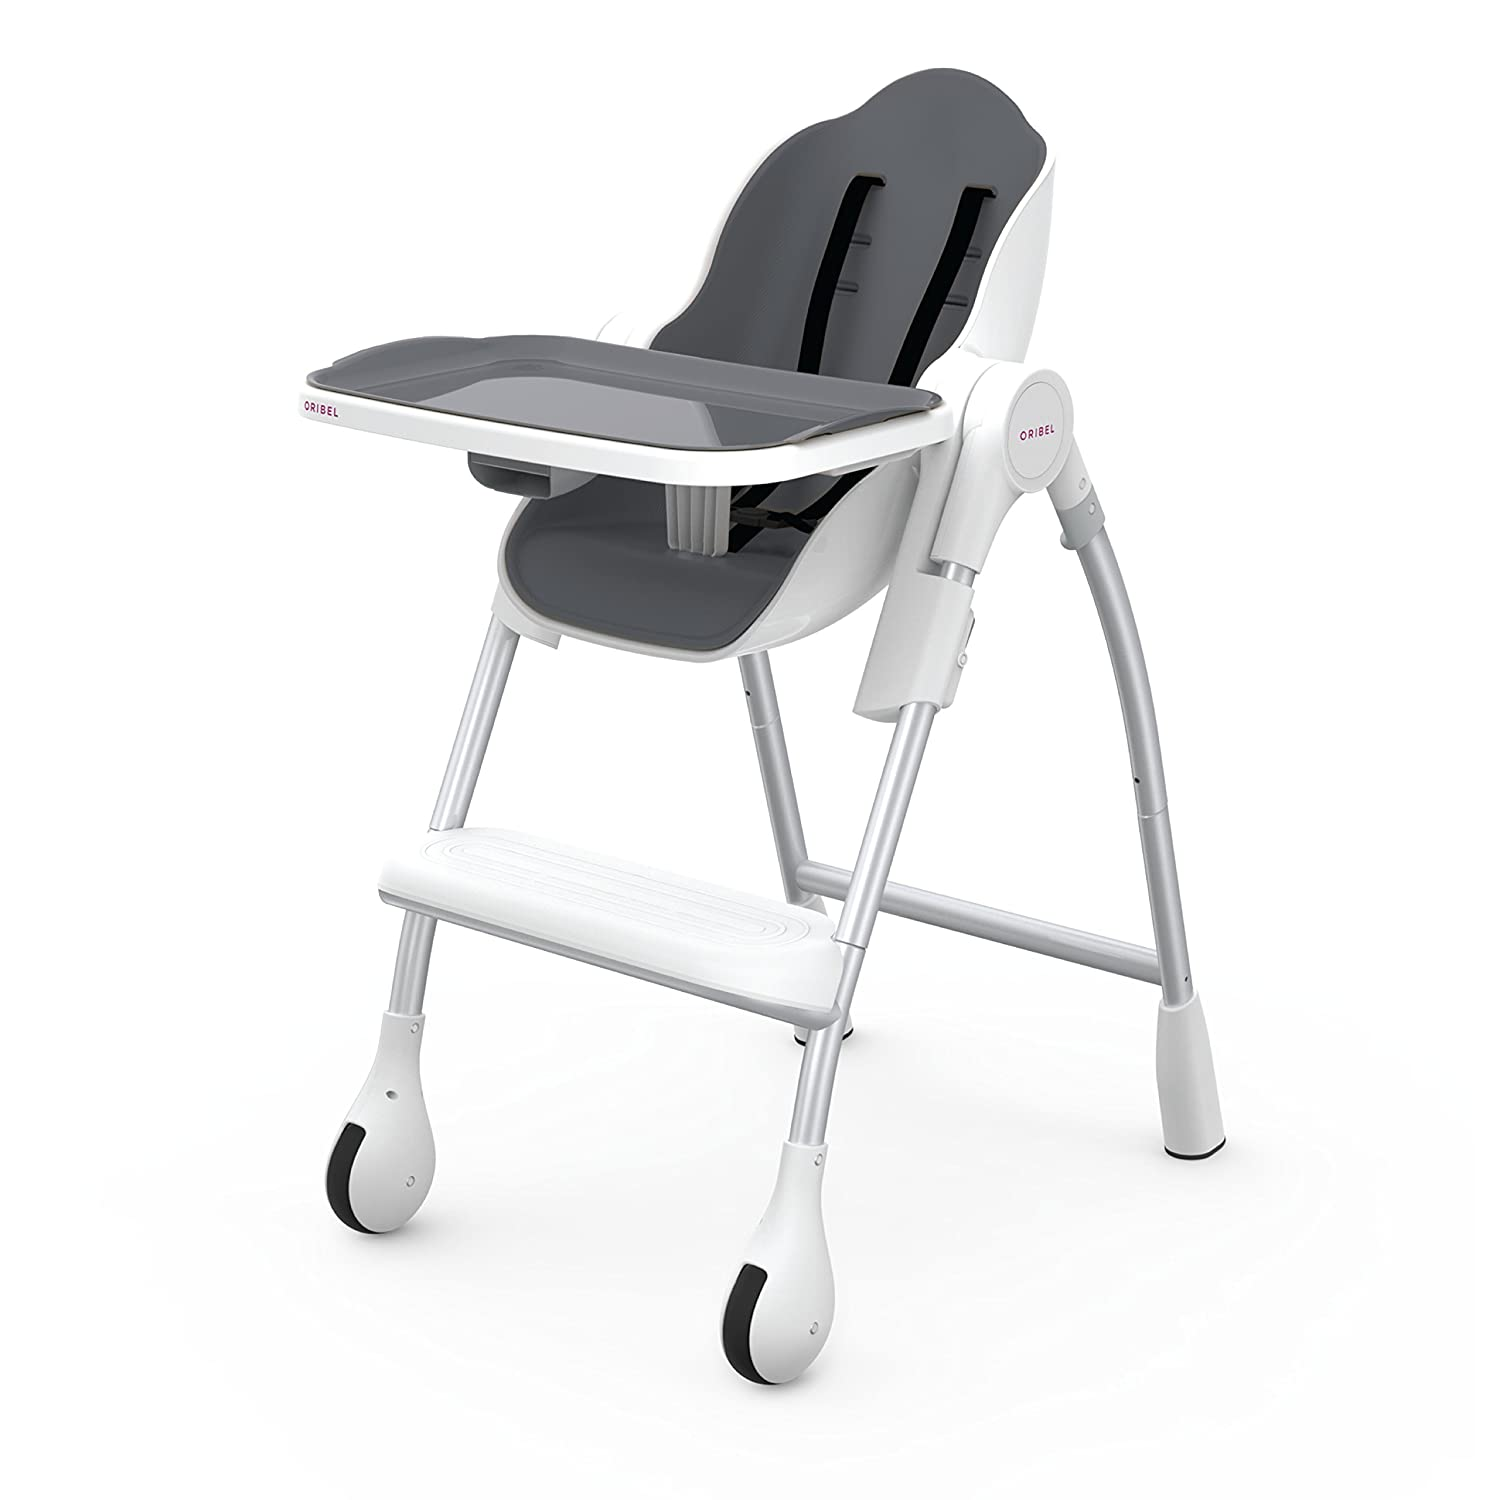 Oribel Cocoon High Chair, Slate OR203-90001